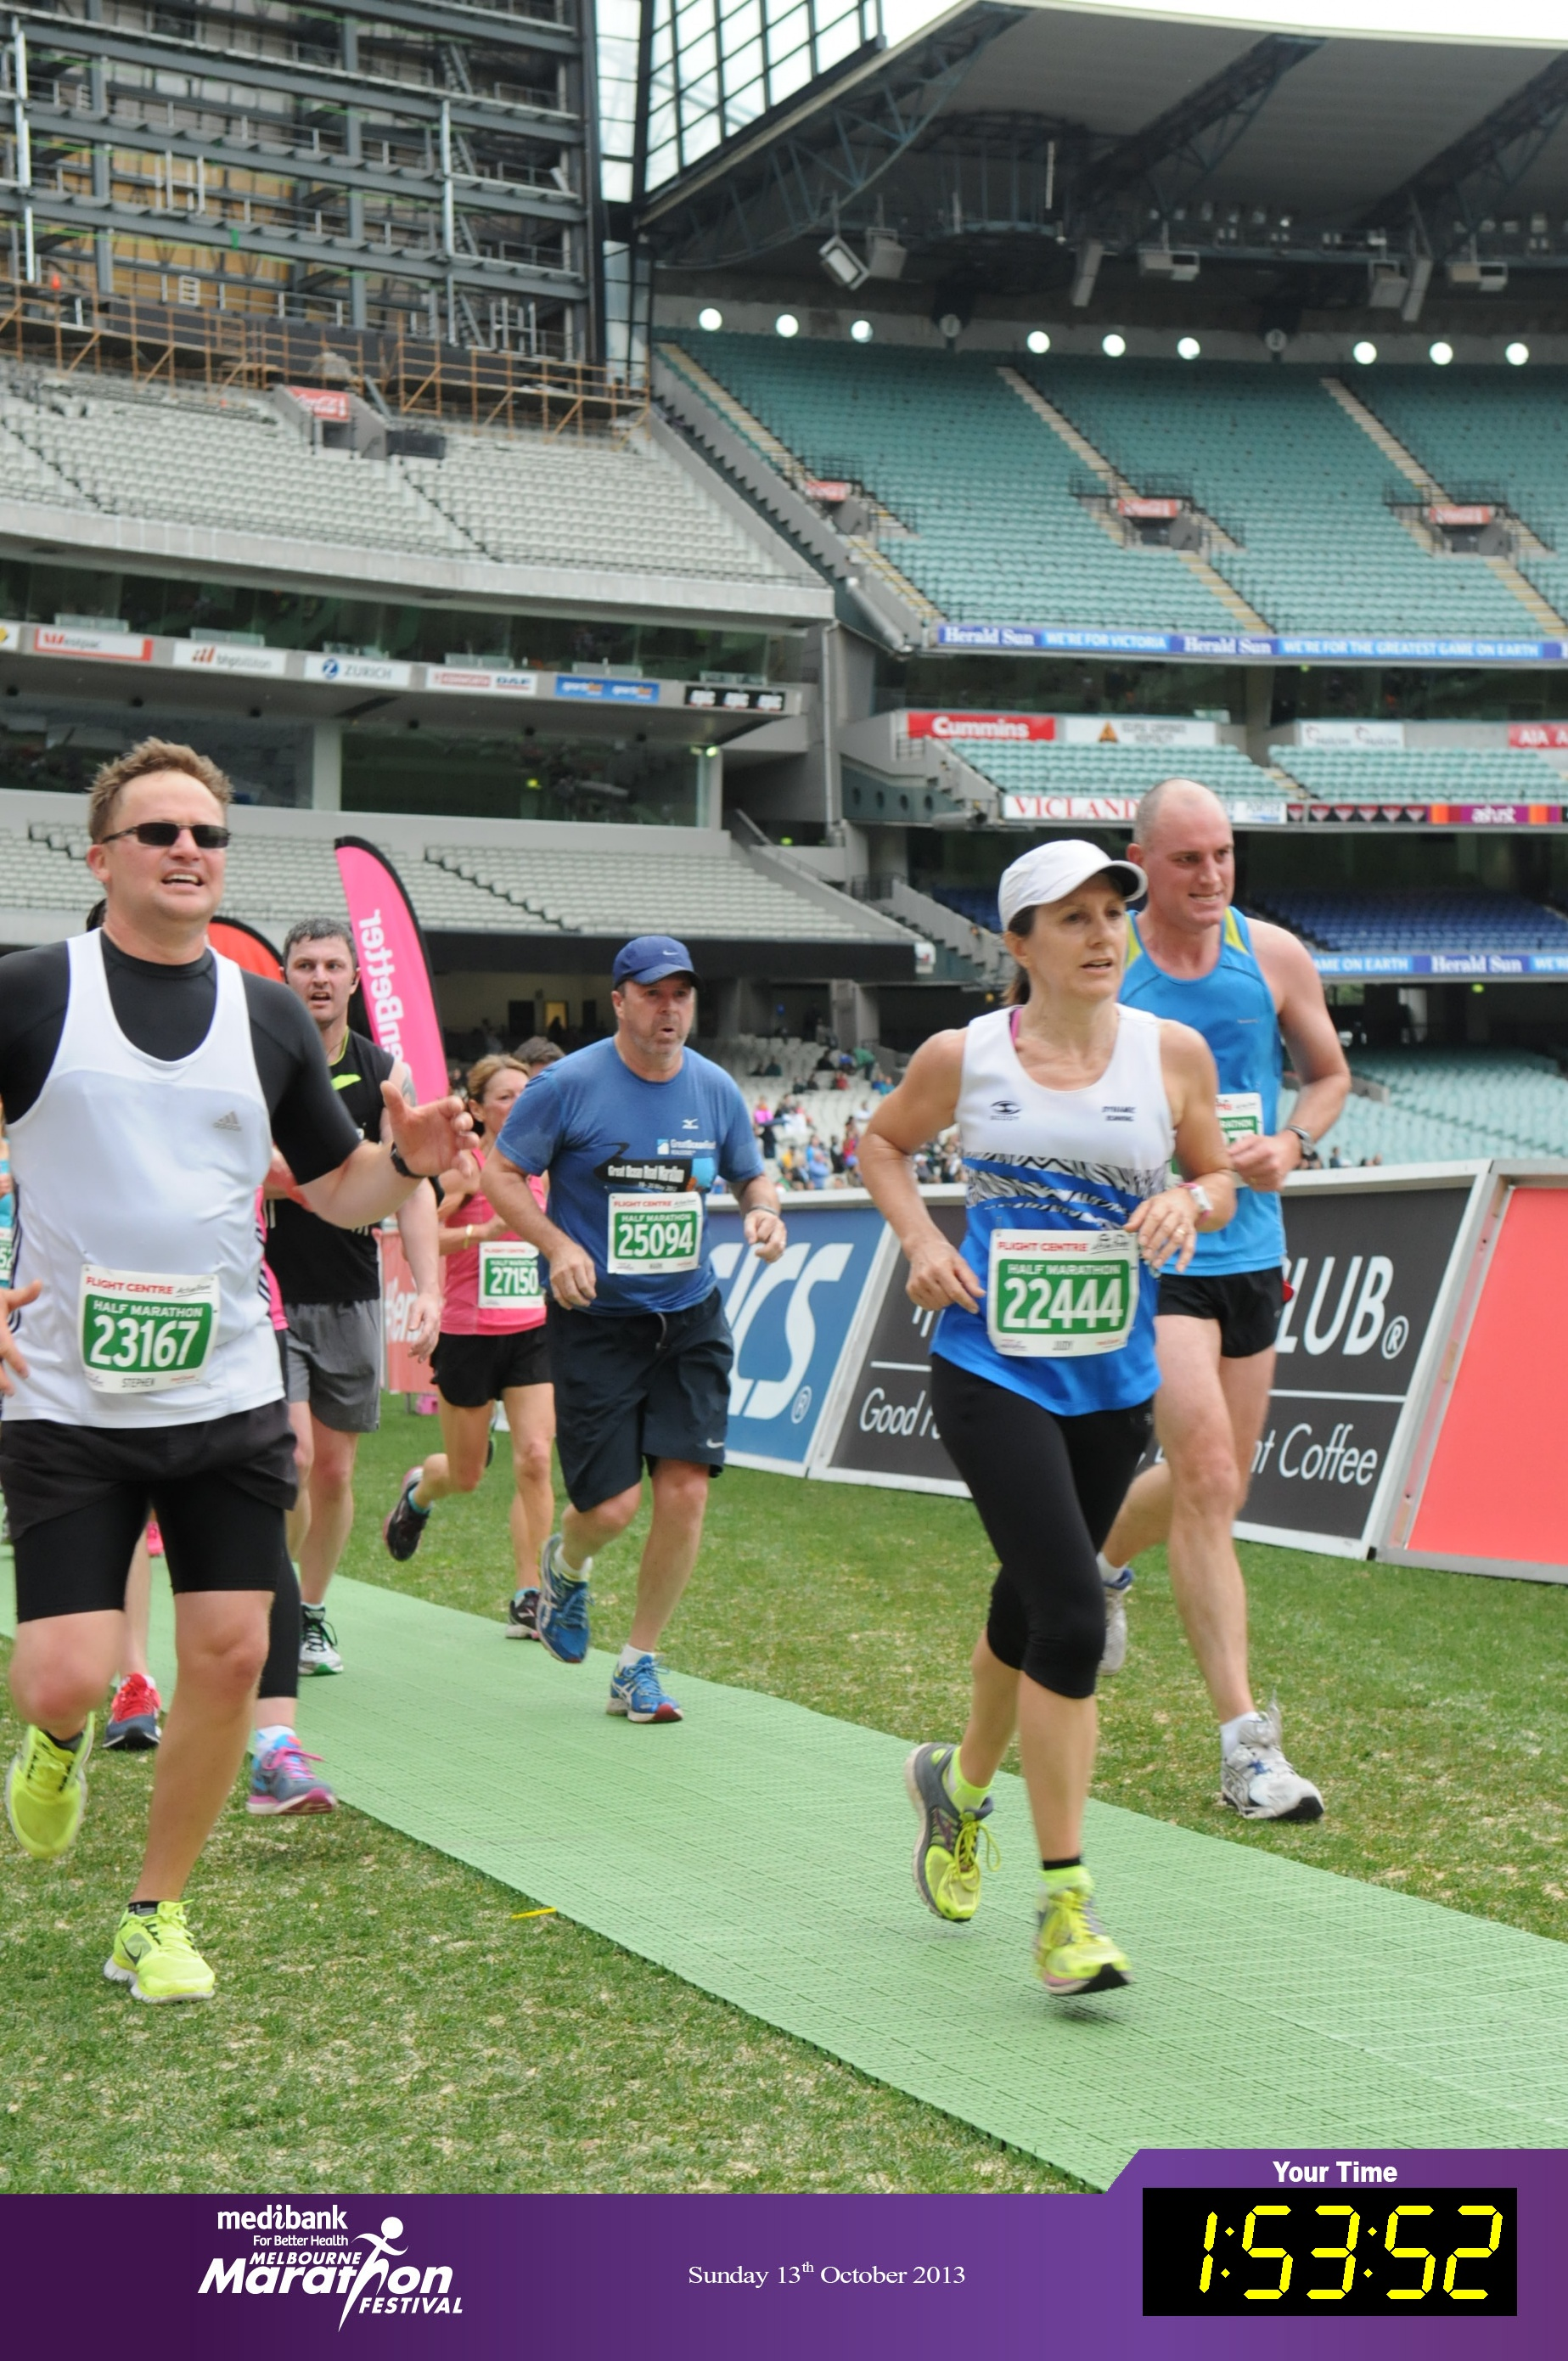 Judy finishing the Melbourne Half Marathon in October 2013.